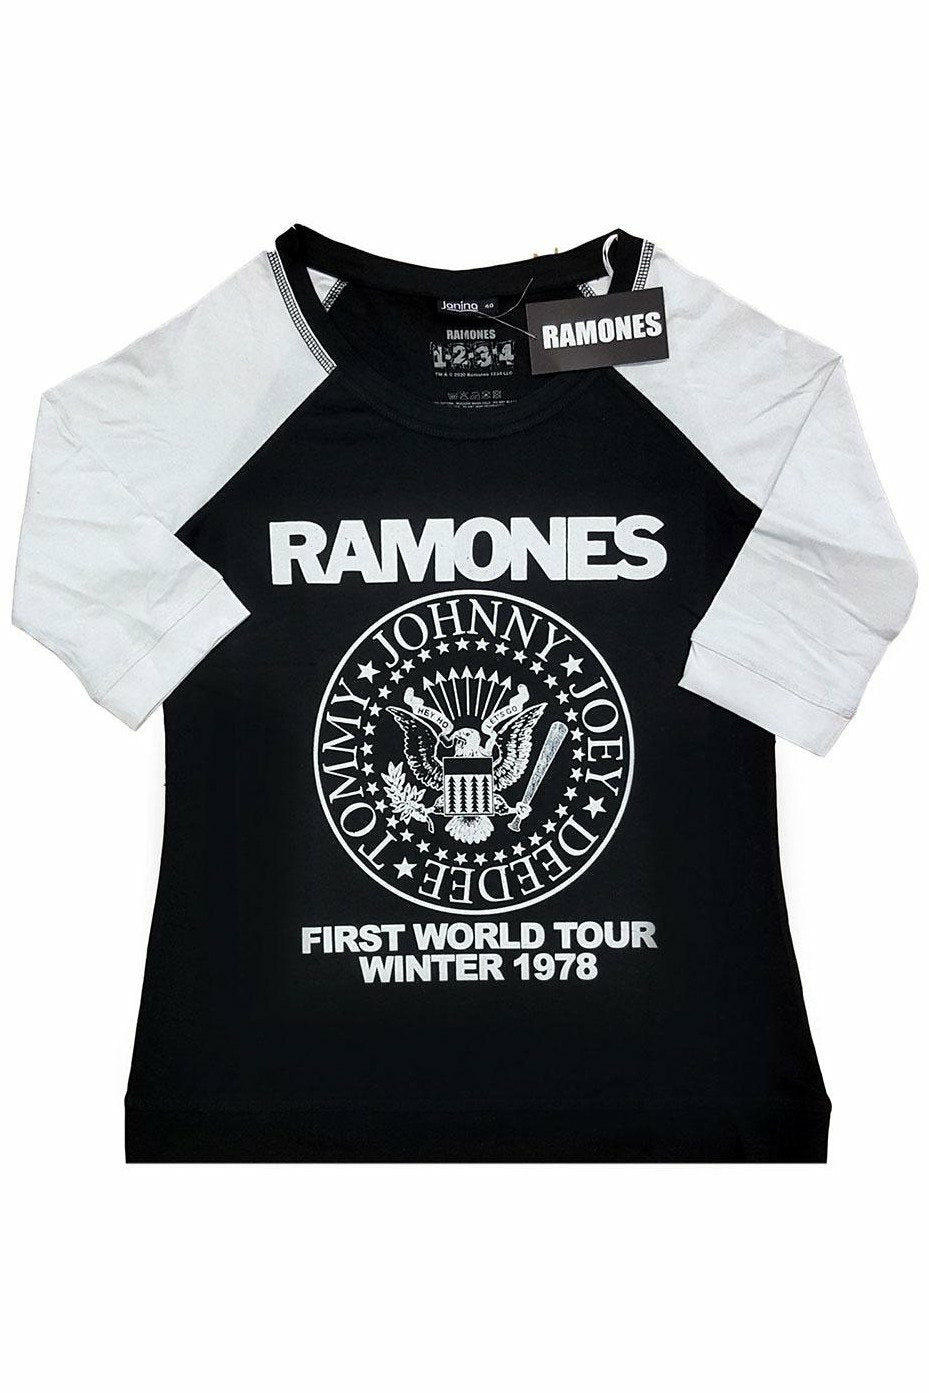 Ramones : First World Tour 1978 Raglan